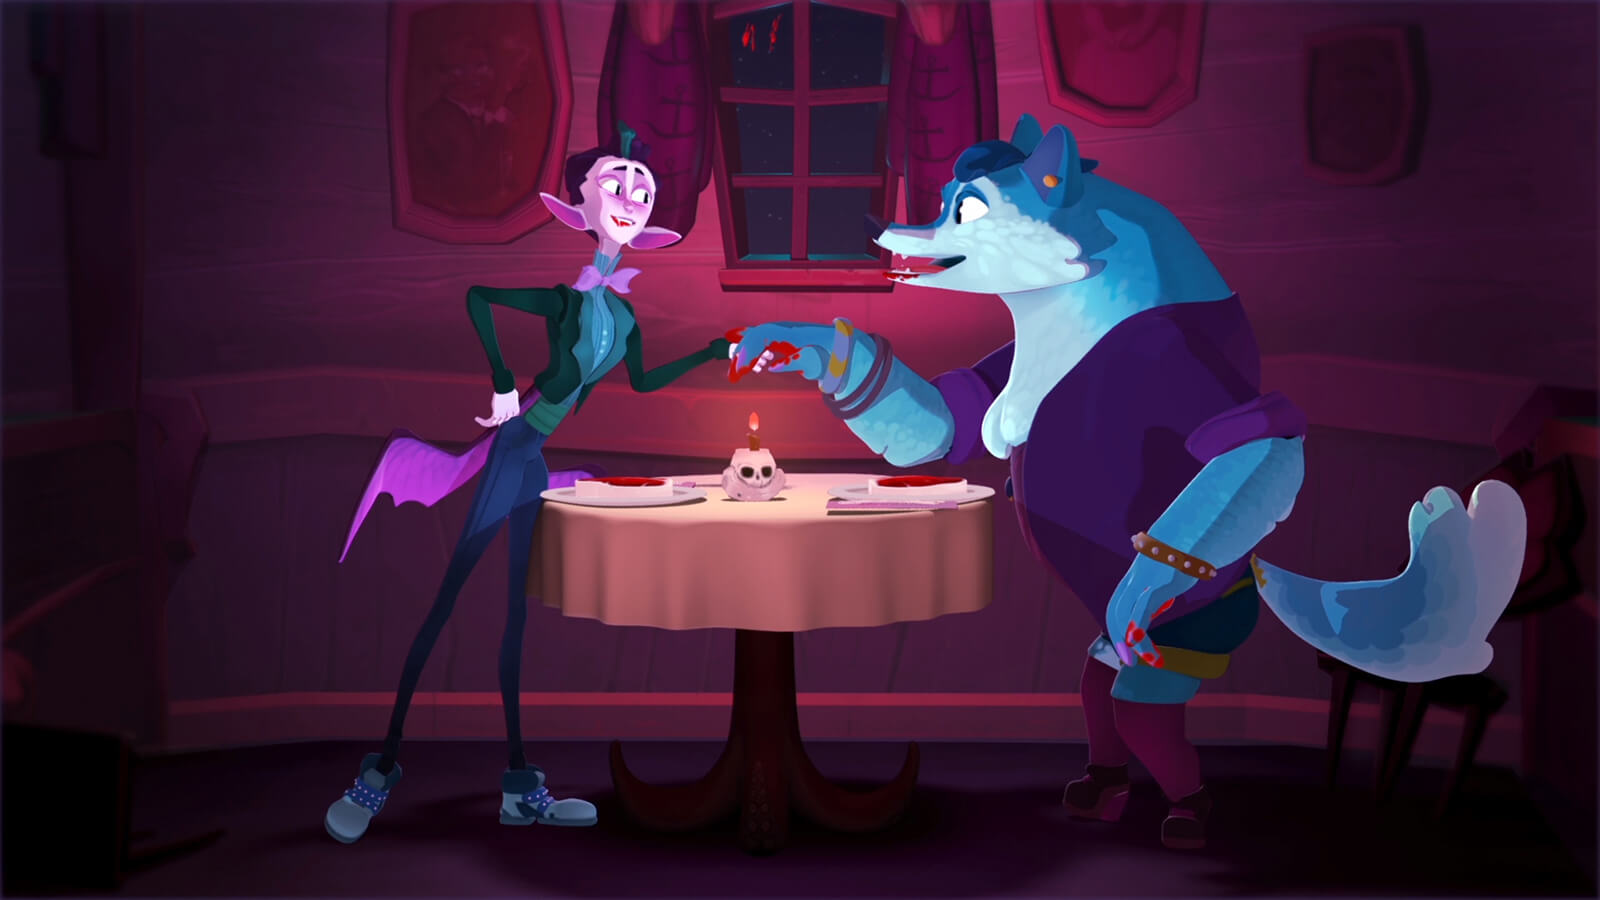 A pink vampire in a suit holds hands with a blue werewolf over a dinner table with two steaks and a lit candle inside a skull